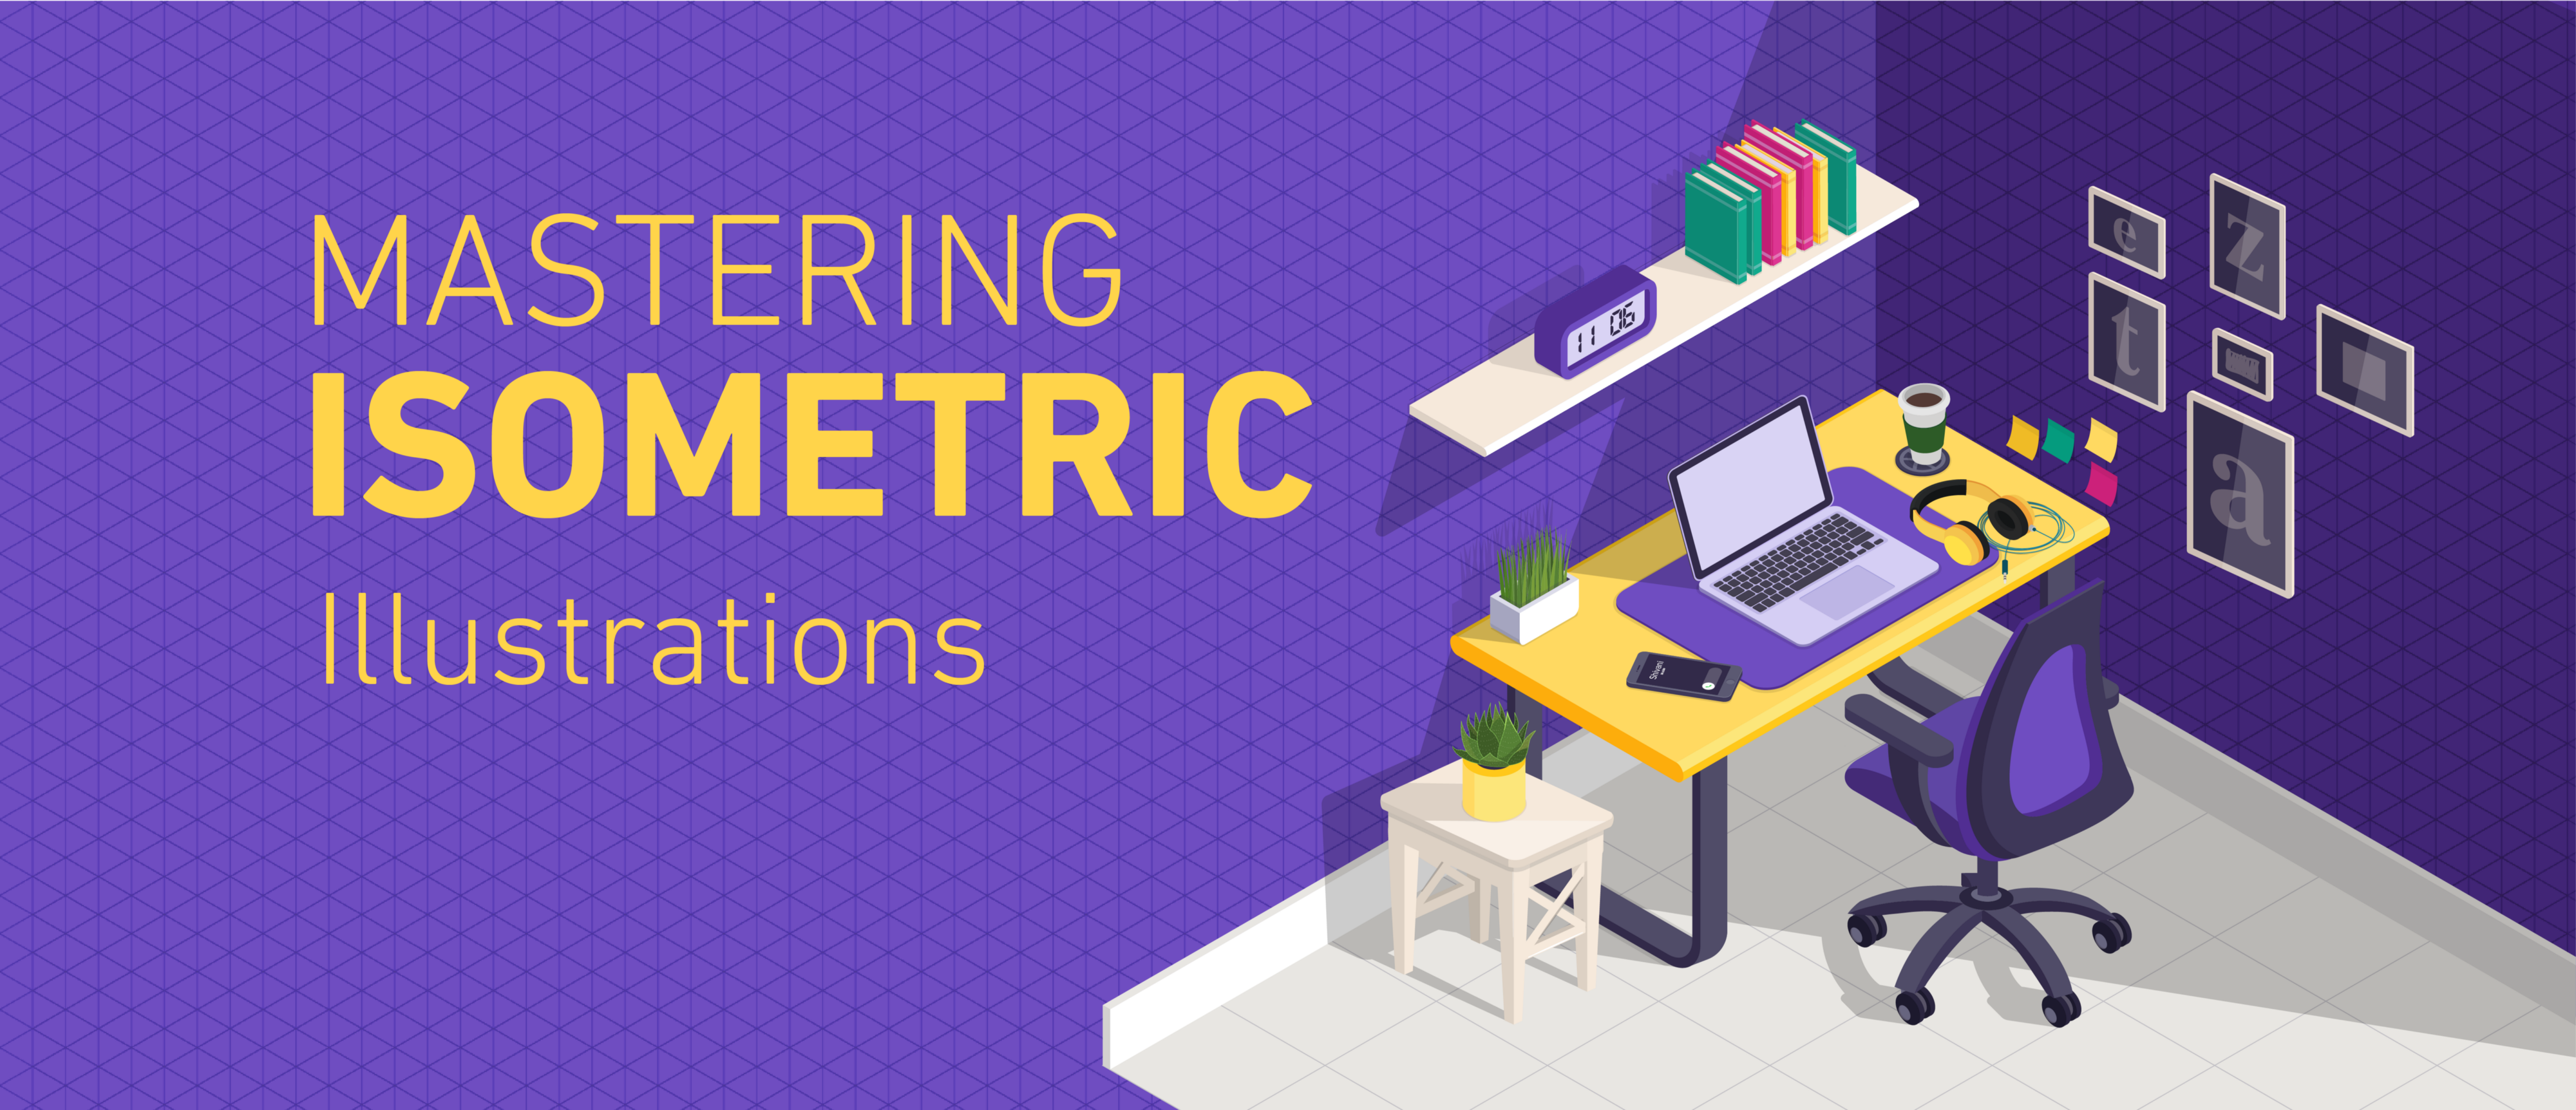 Mastering Isometric Illustrations — Part 2 - Zeta Design